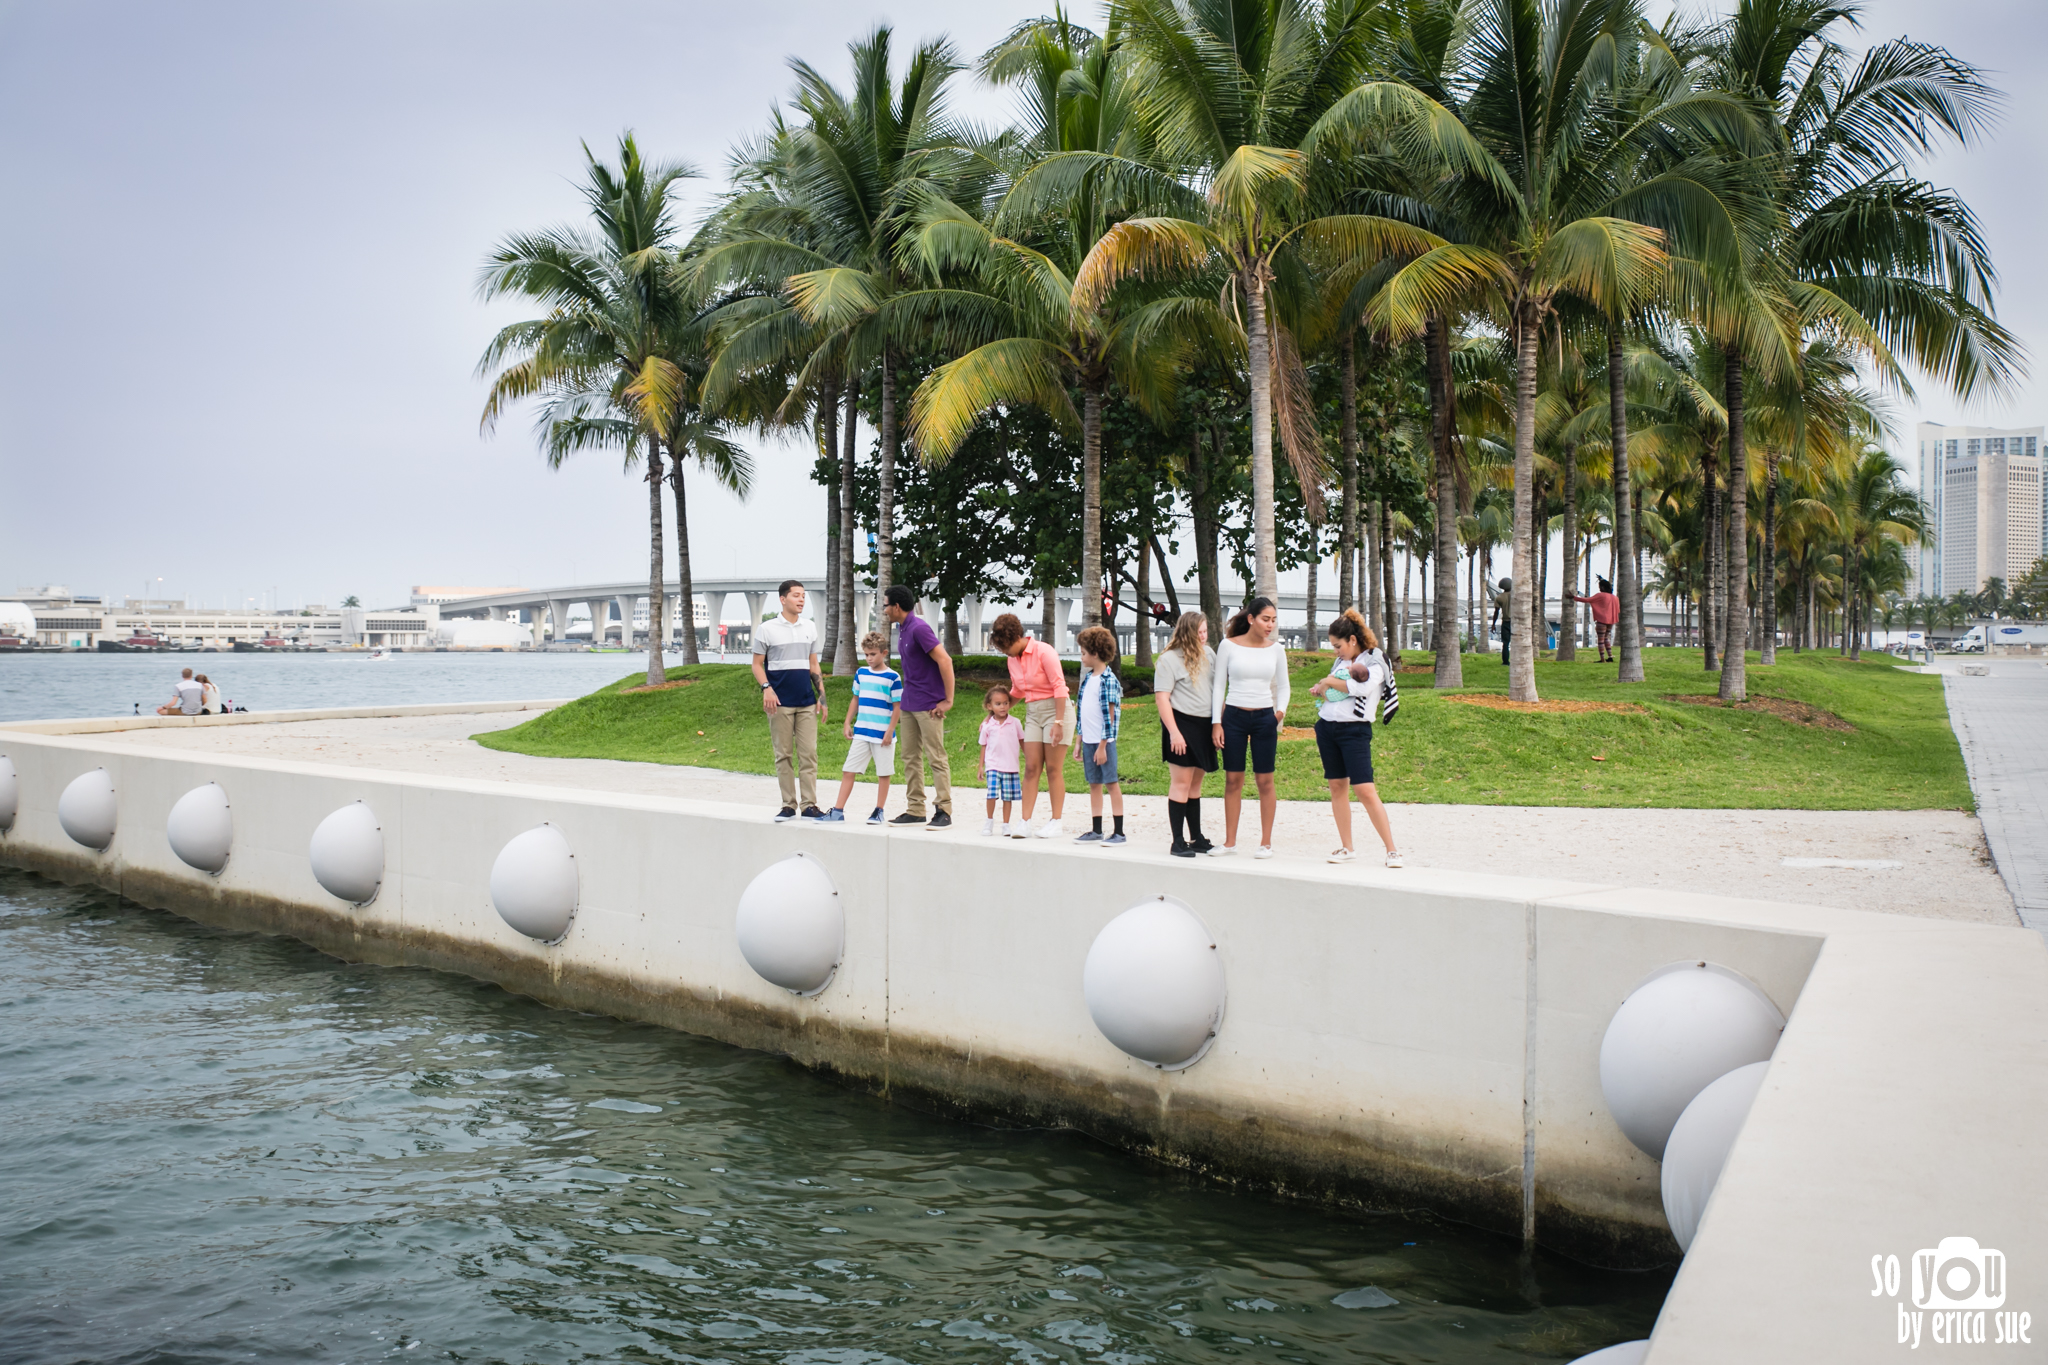 south-florida-broward-miami-museum-park-lifestyle-family-photography-so-you-by-erica-sue-3706.jpg